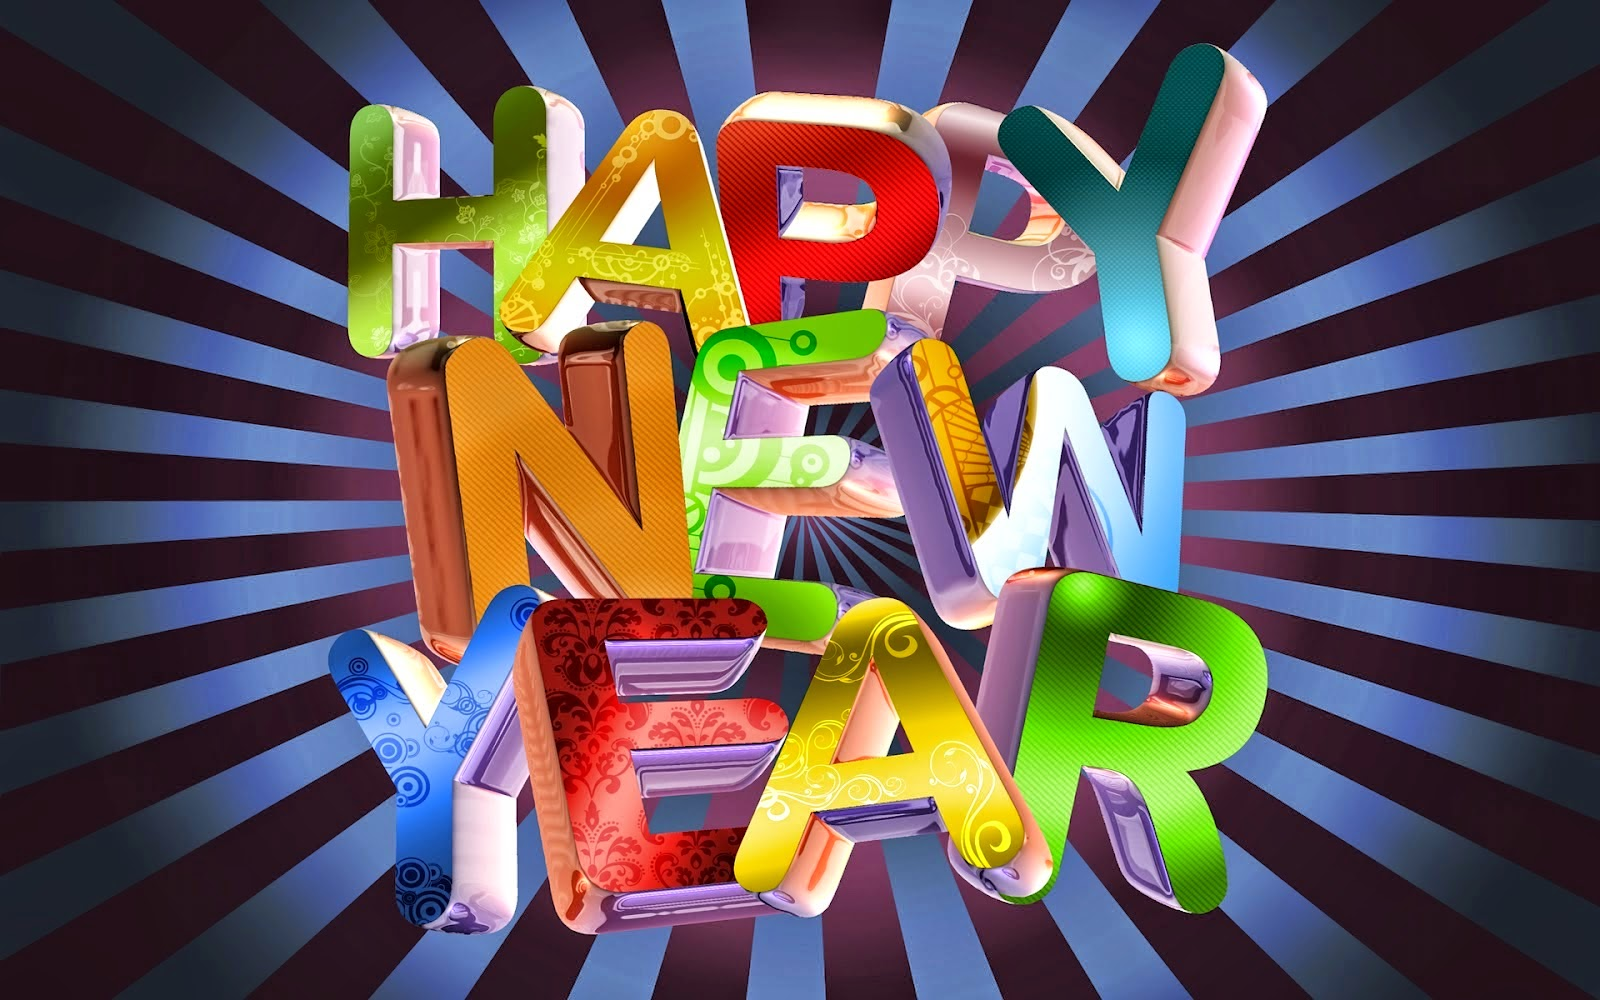 happy new year 2016 hd wallpaper images